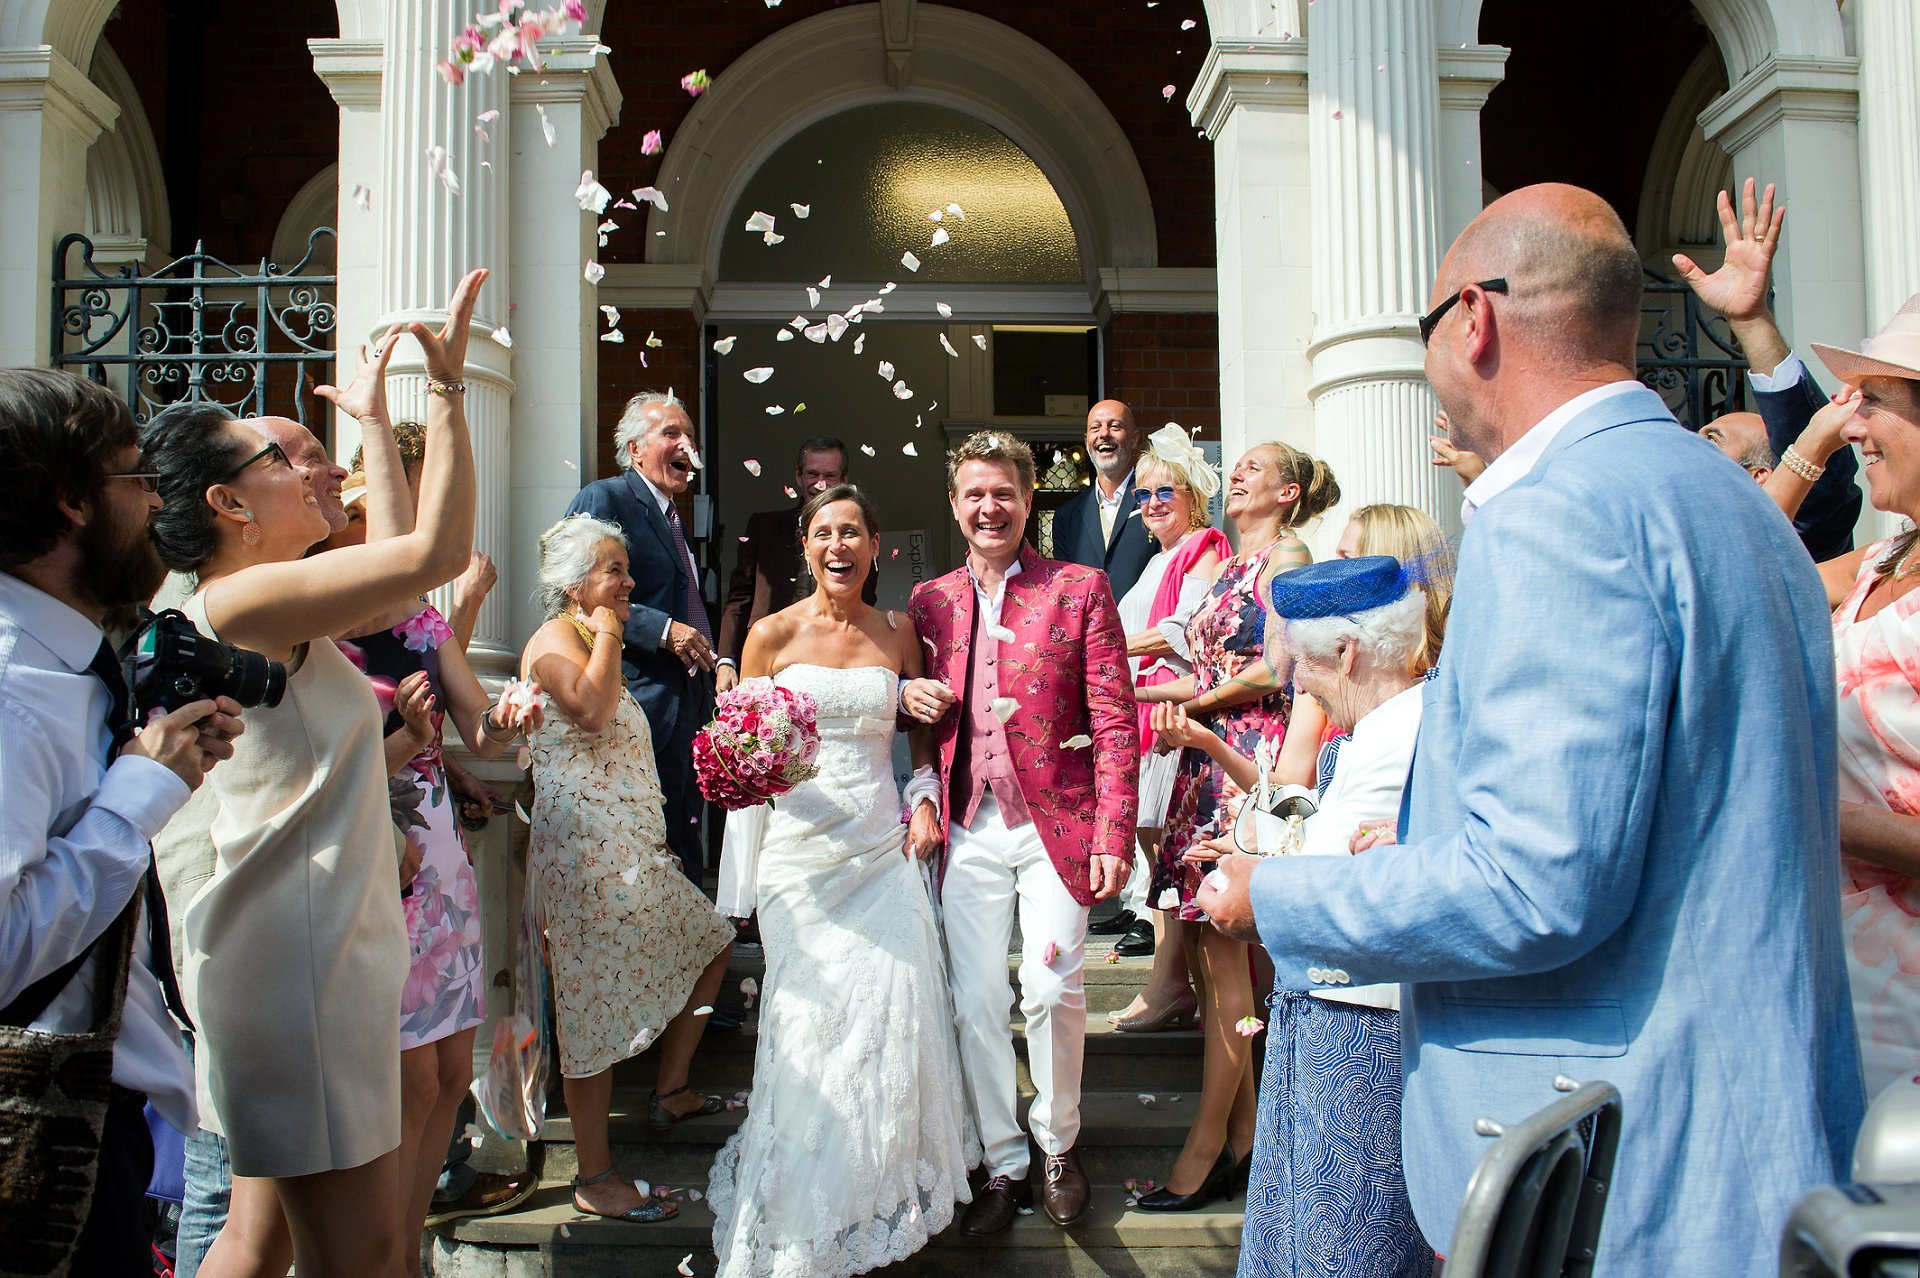 Wedding photography at Mayfair Library on the steps outside with guests throwing rose petal confetti